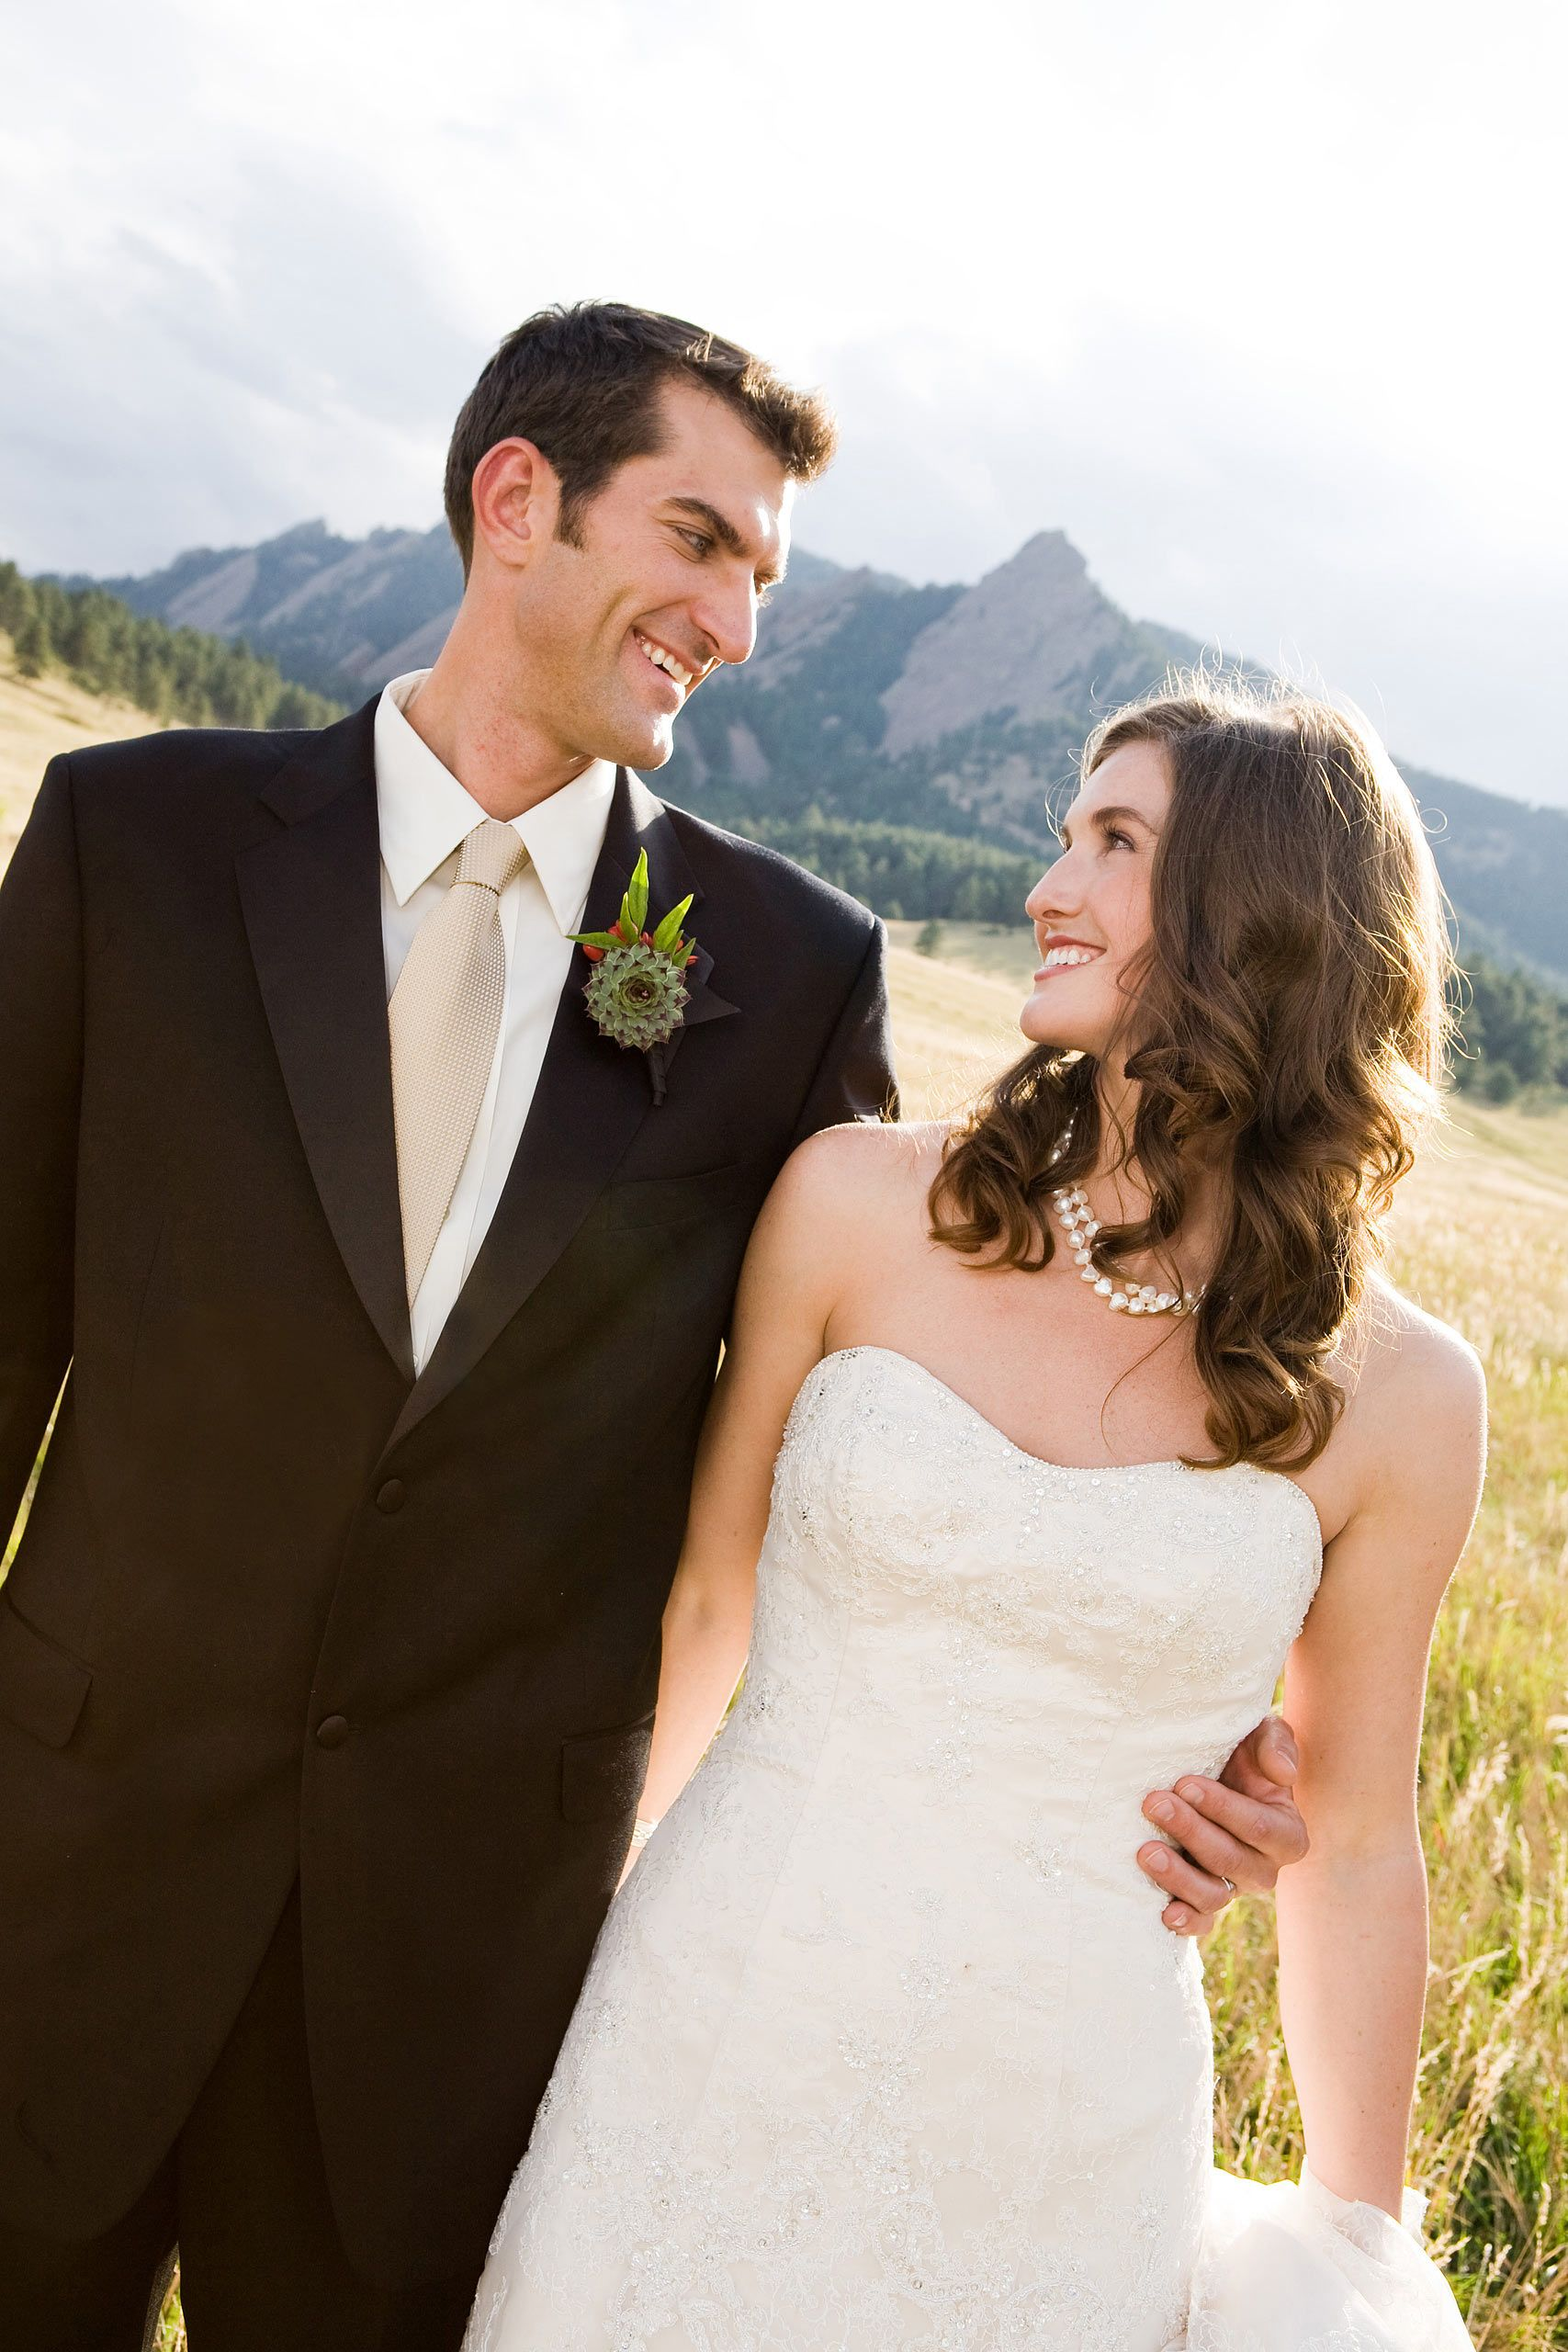 007-Boulder-wedding-photography.jpg